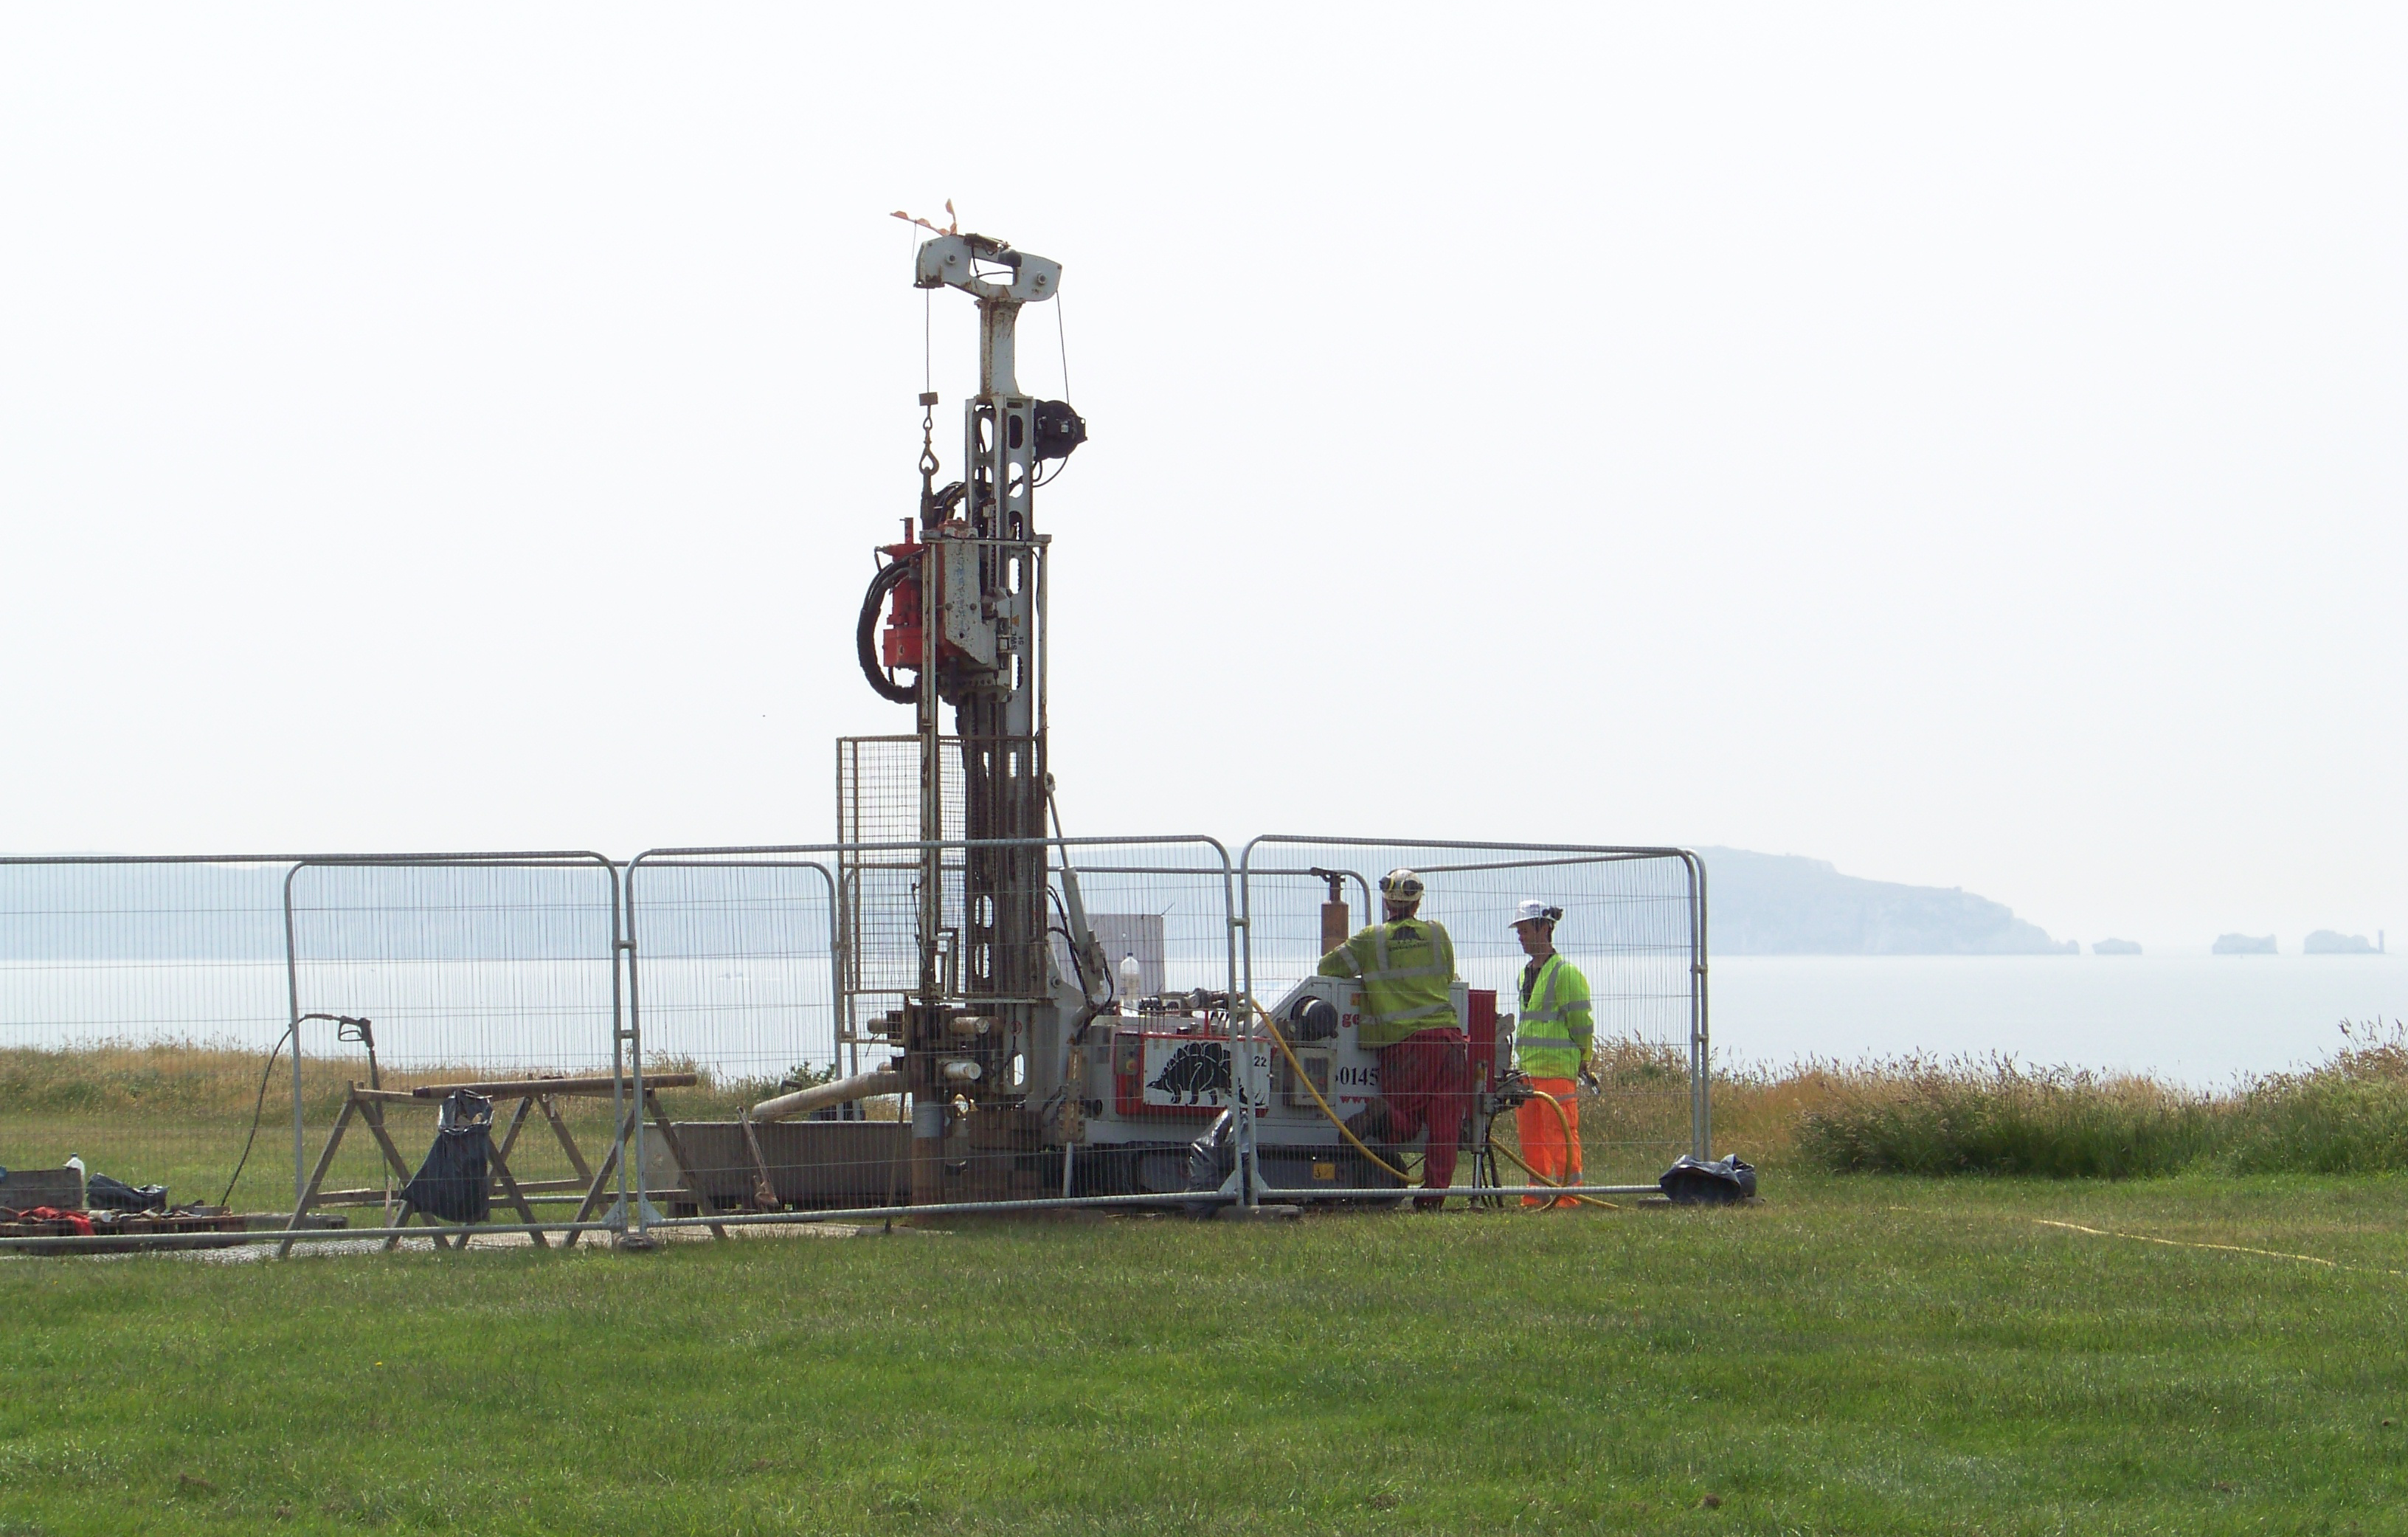 Drilling rig on cliff top at Barton on sea